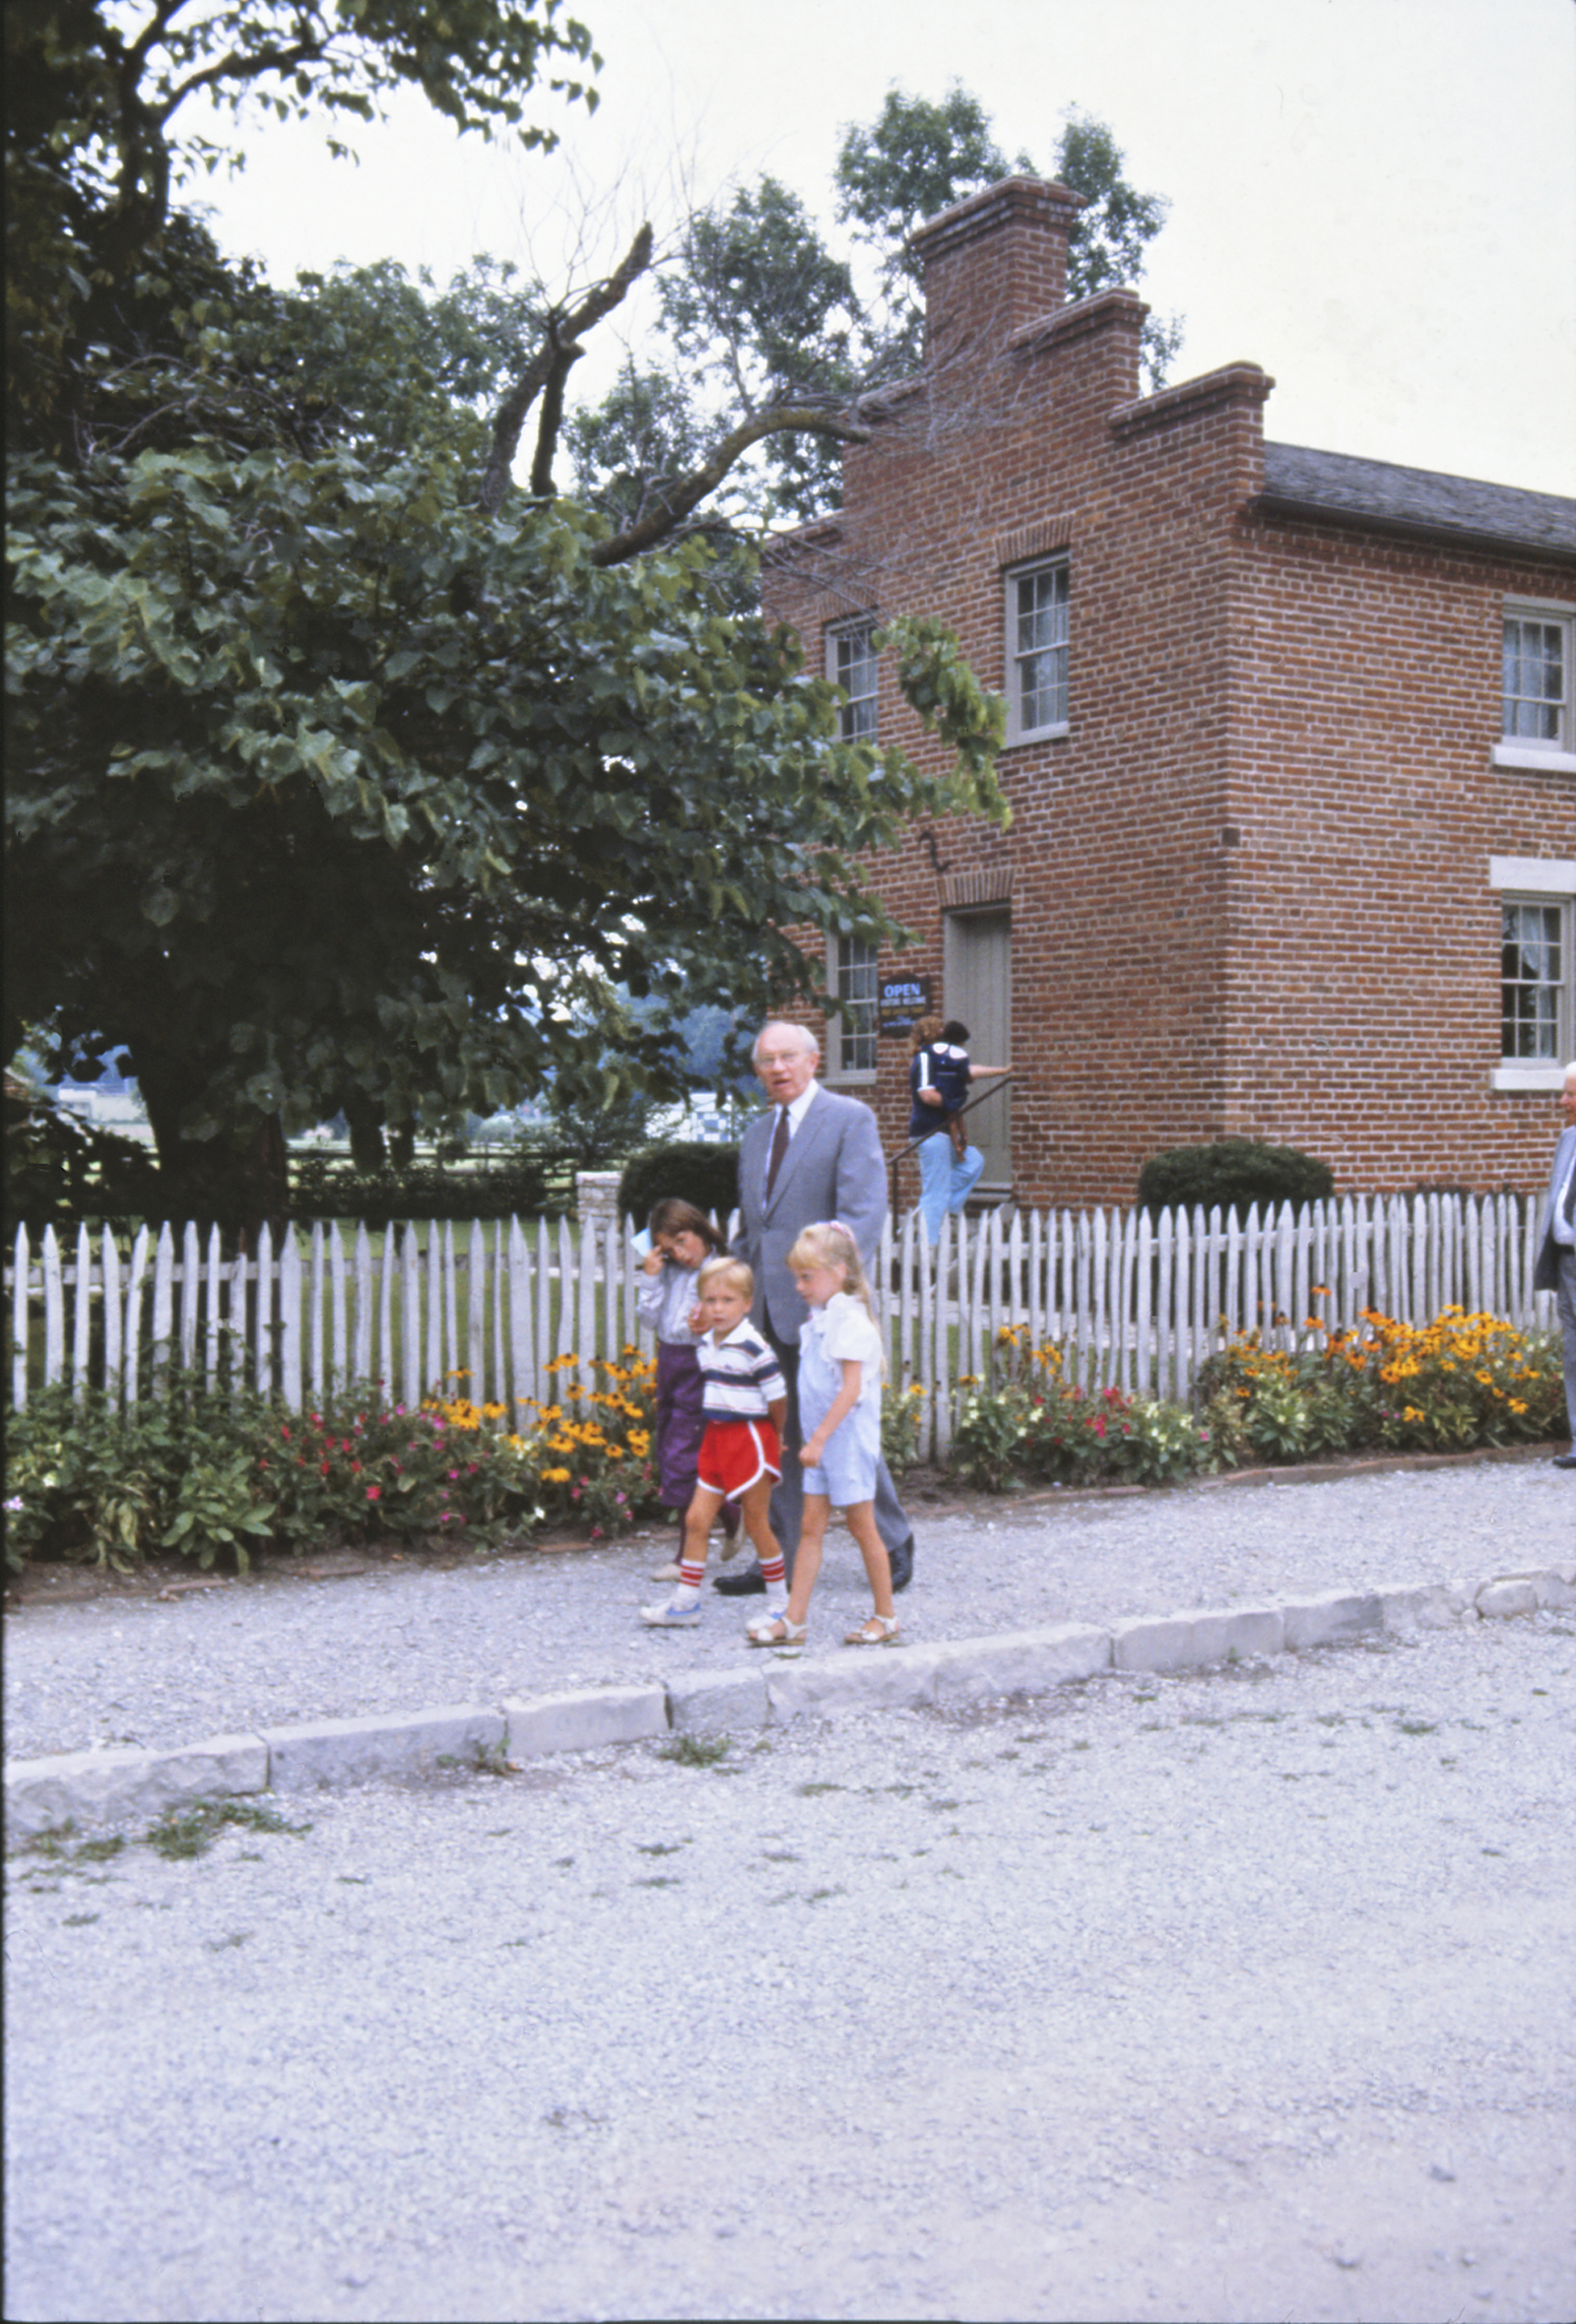 About 20 years before he dedicated the Nauvoo Illinois Temple, President Gordon B. Hinckley joined children on a walk down a street in Old Nauvoo en route to Parley Street that leads to the Mississippi River landing where Latter-day Saints crossed over to Iowa on their westward trek beginning in 1846.